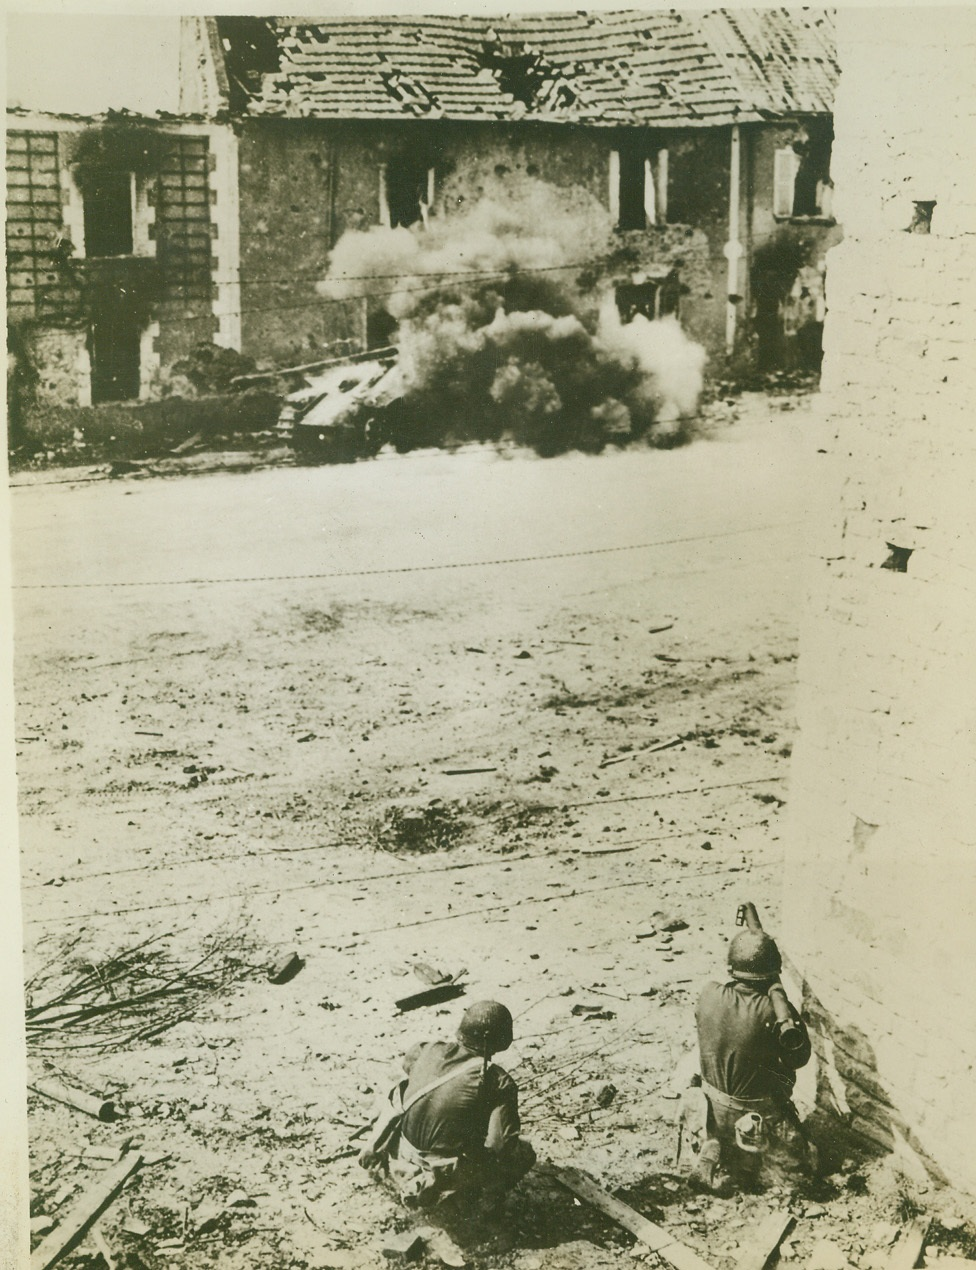 Removing German Tank Obstacle, 8/1/1944. Normandy, France—The camera records the instant when the bazooka guns fired by the Allied soldiers in the foreground score direct hits on the German tank in the rear, and the vehicle goes up in a cloud of flame and smoke. The soldiers were aiming at the wrecked building which housed German snipers, but the tank was blocking their attack. Credit: ACME;